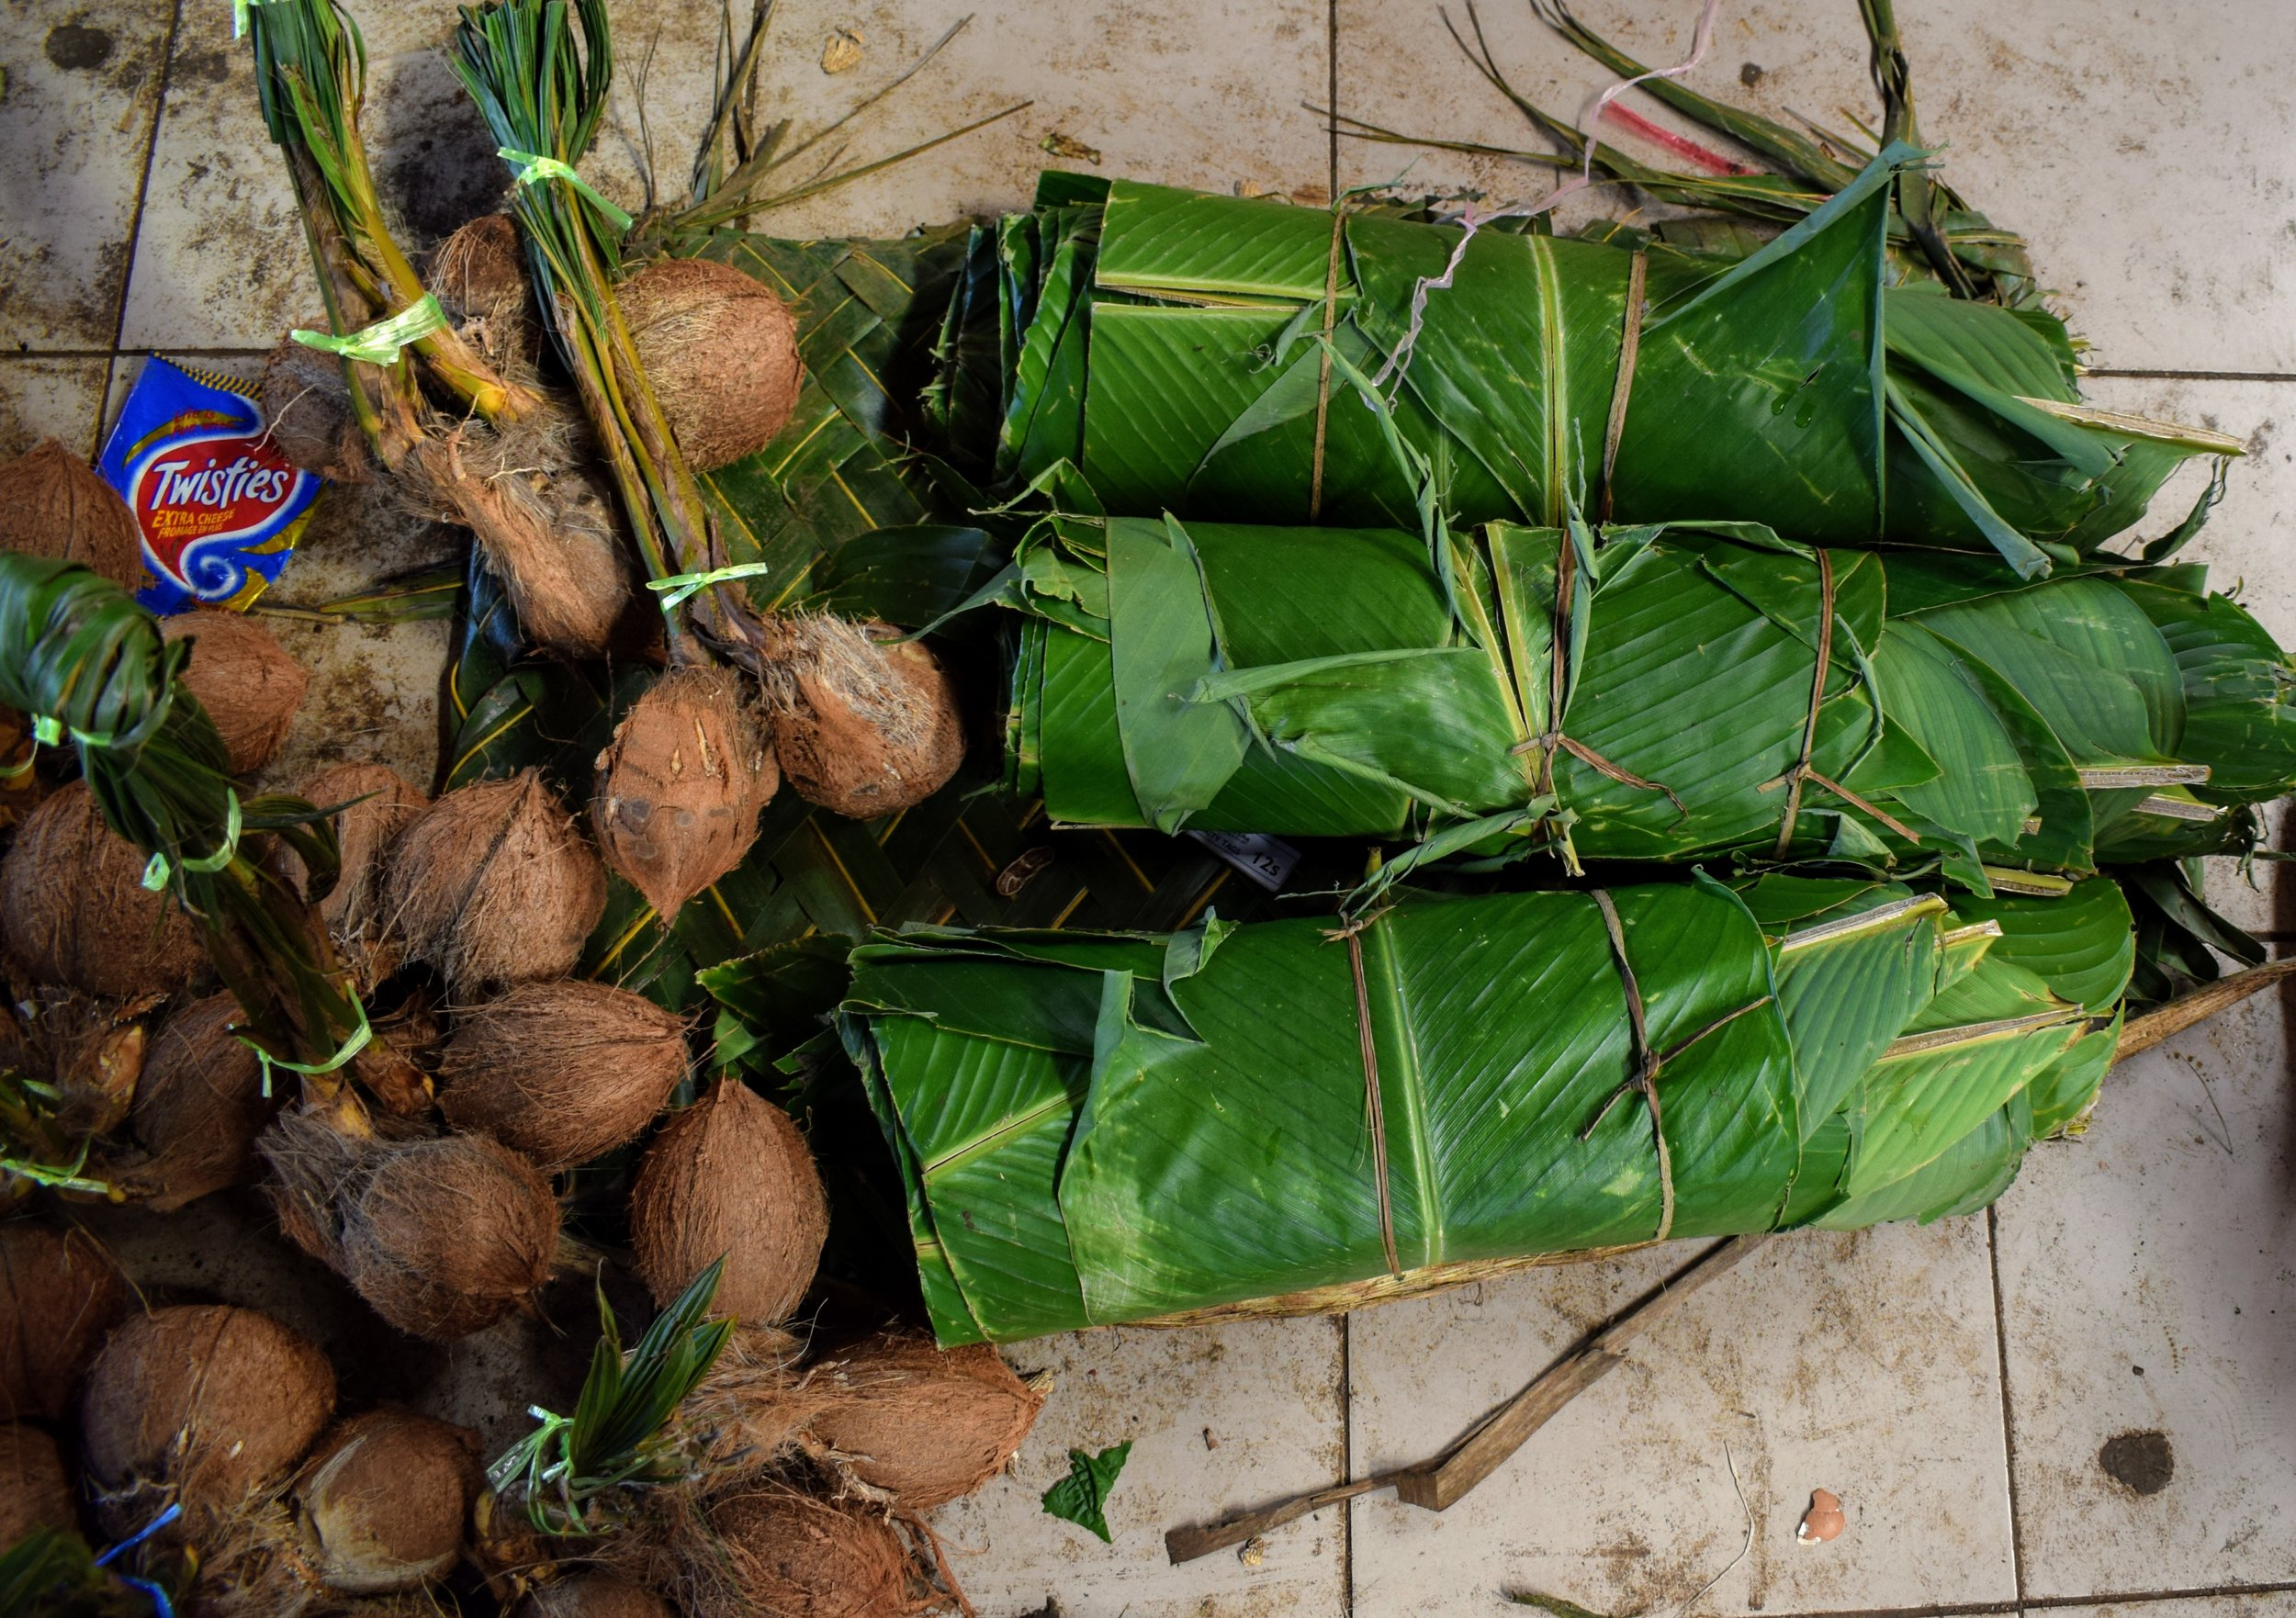 More banana leaves, some coconuts, and... a healthy little bit of dirt & trash.